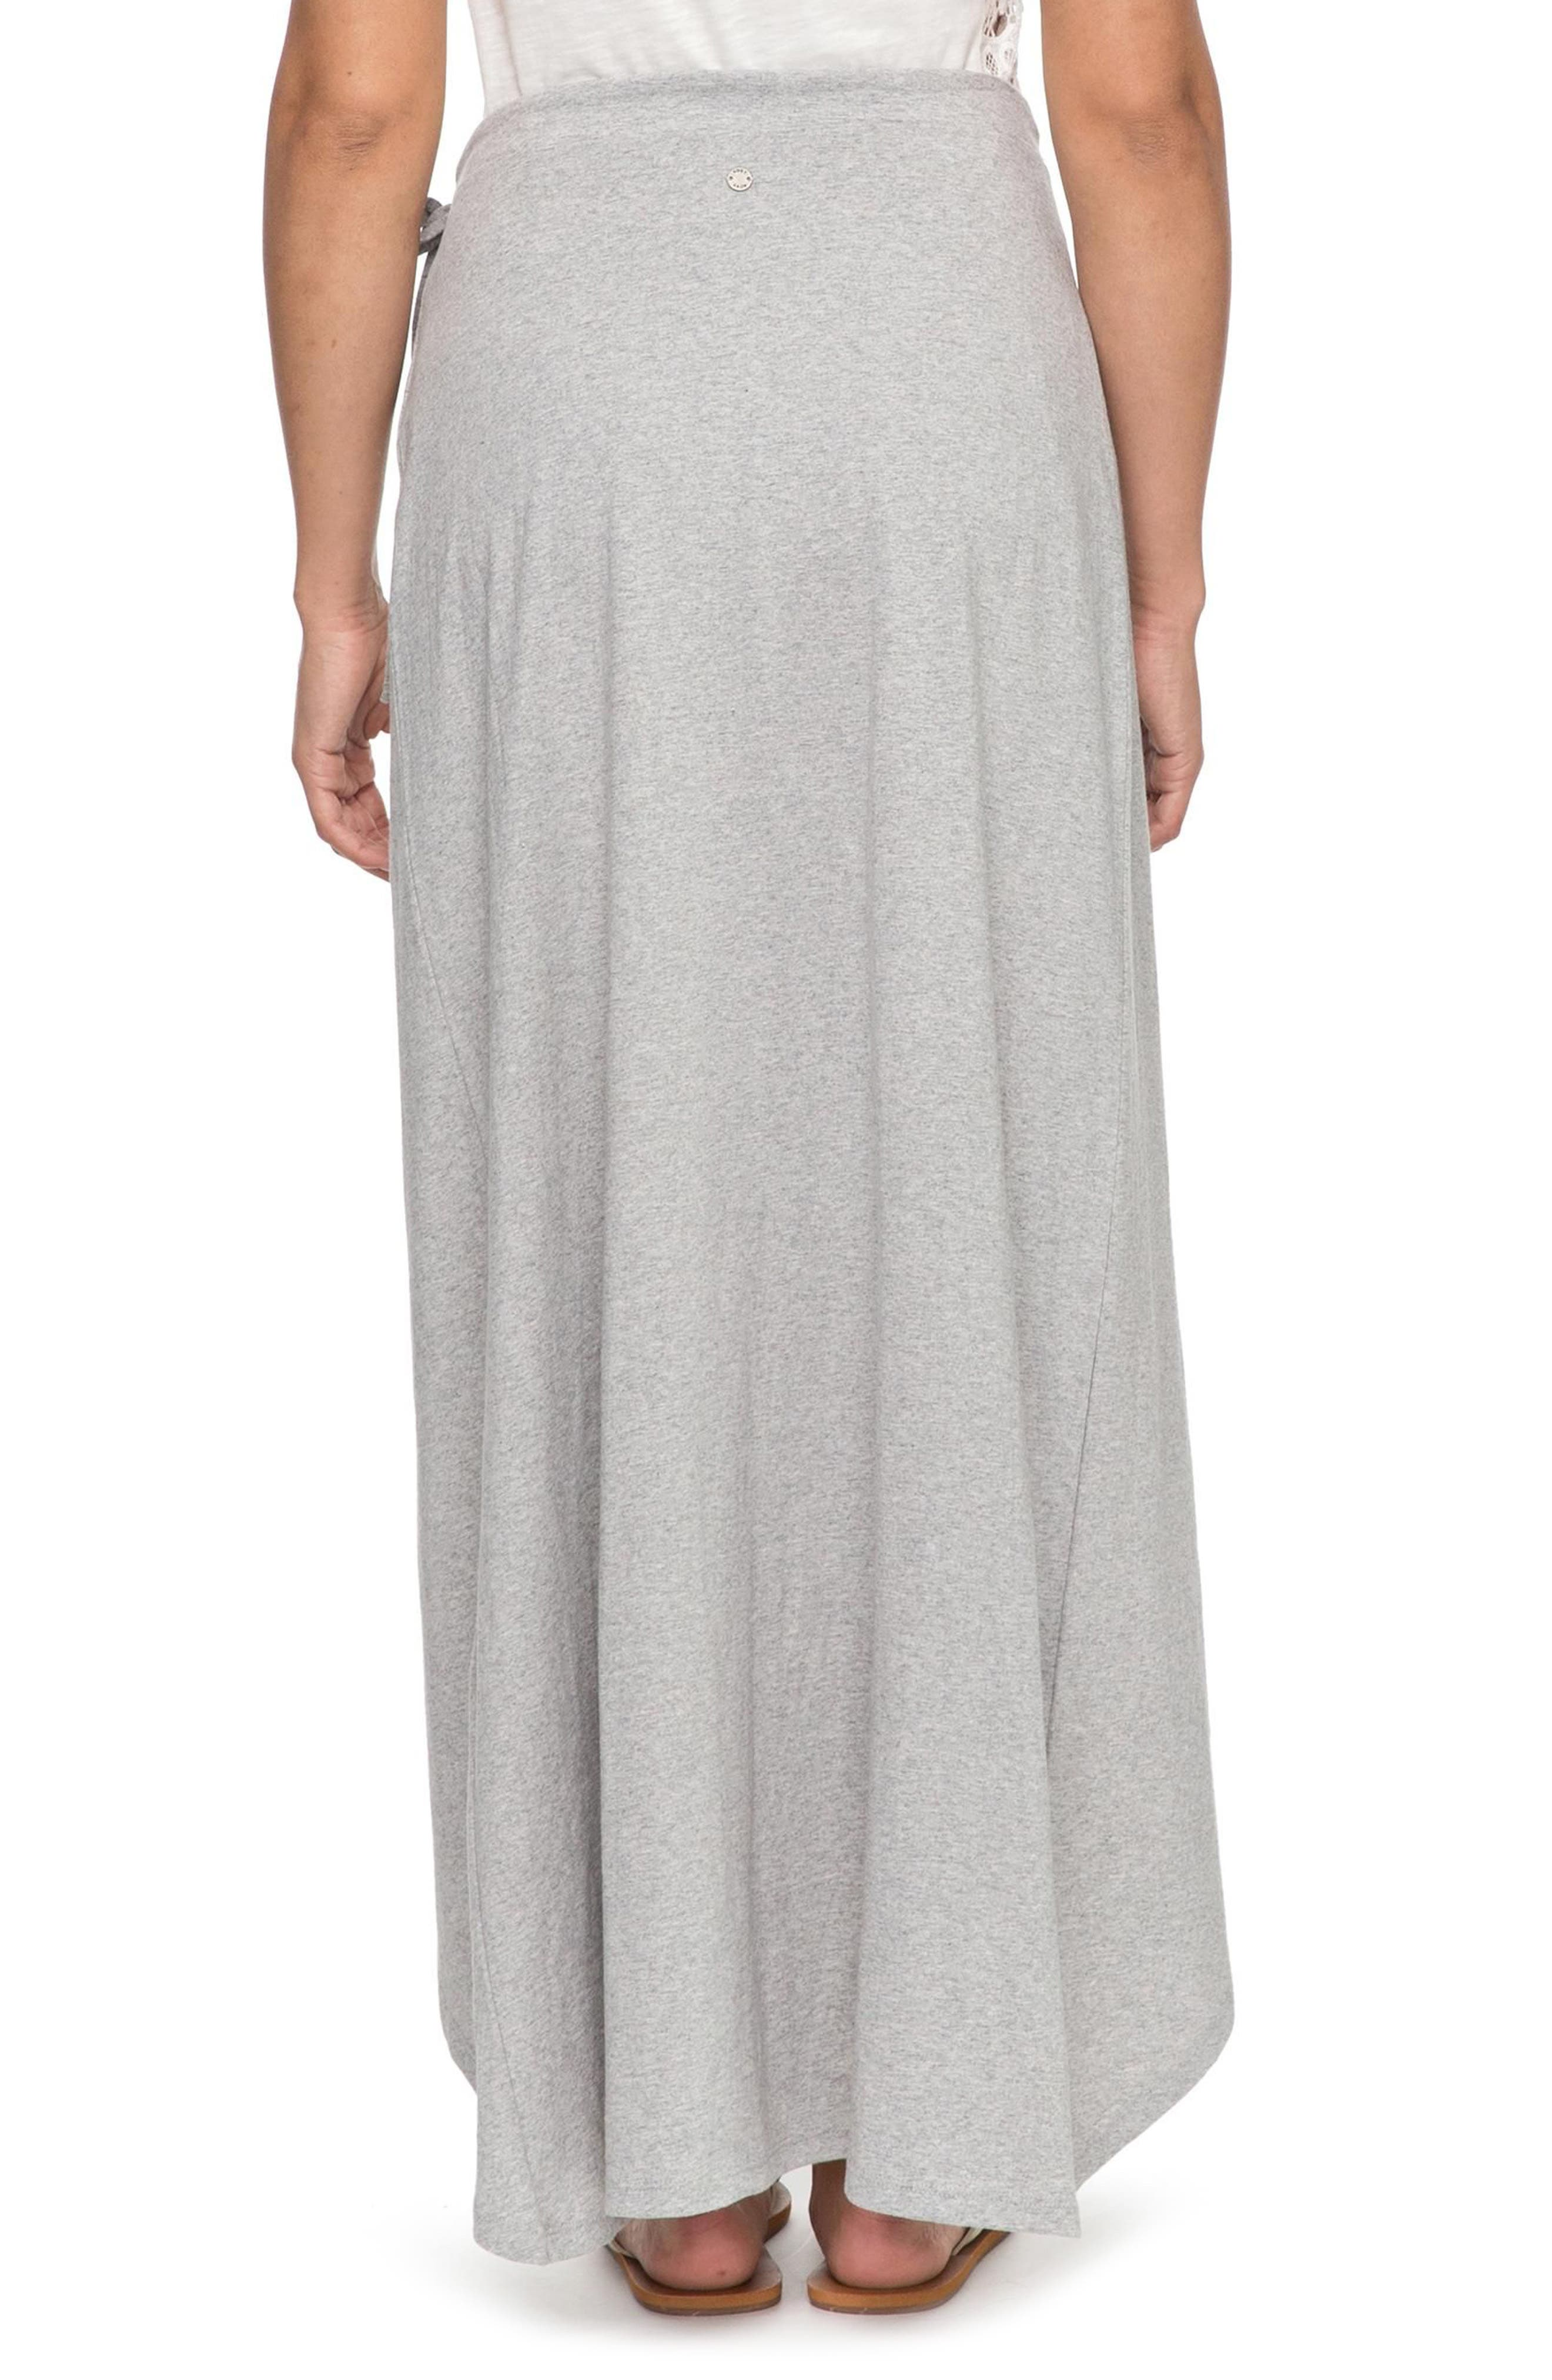 Everlasting Afternoon Long Wrap Skirt,                             Alternate thumbnail 2, color,